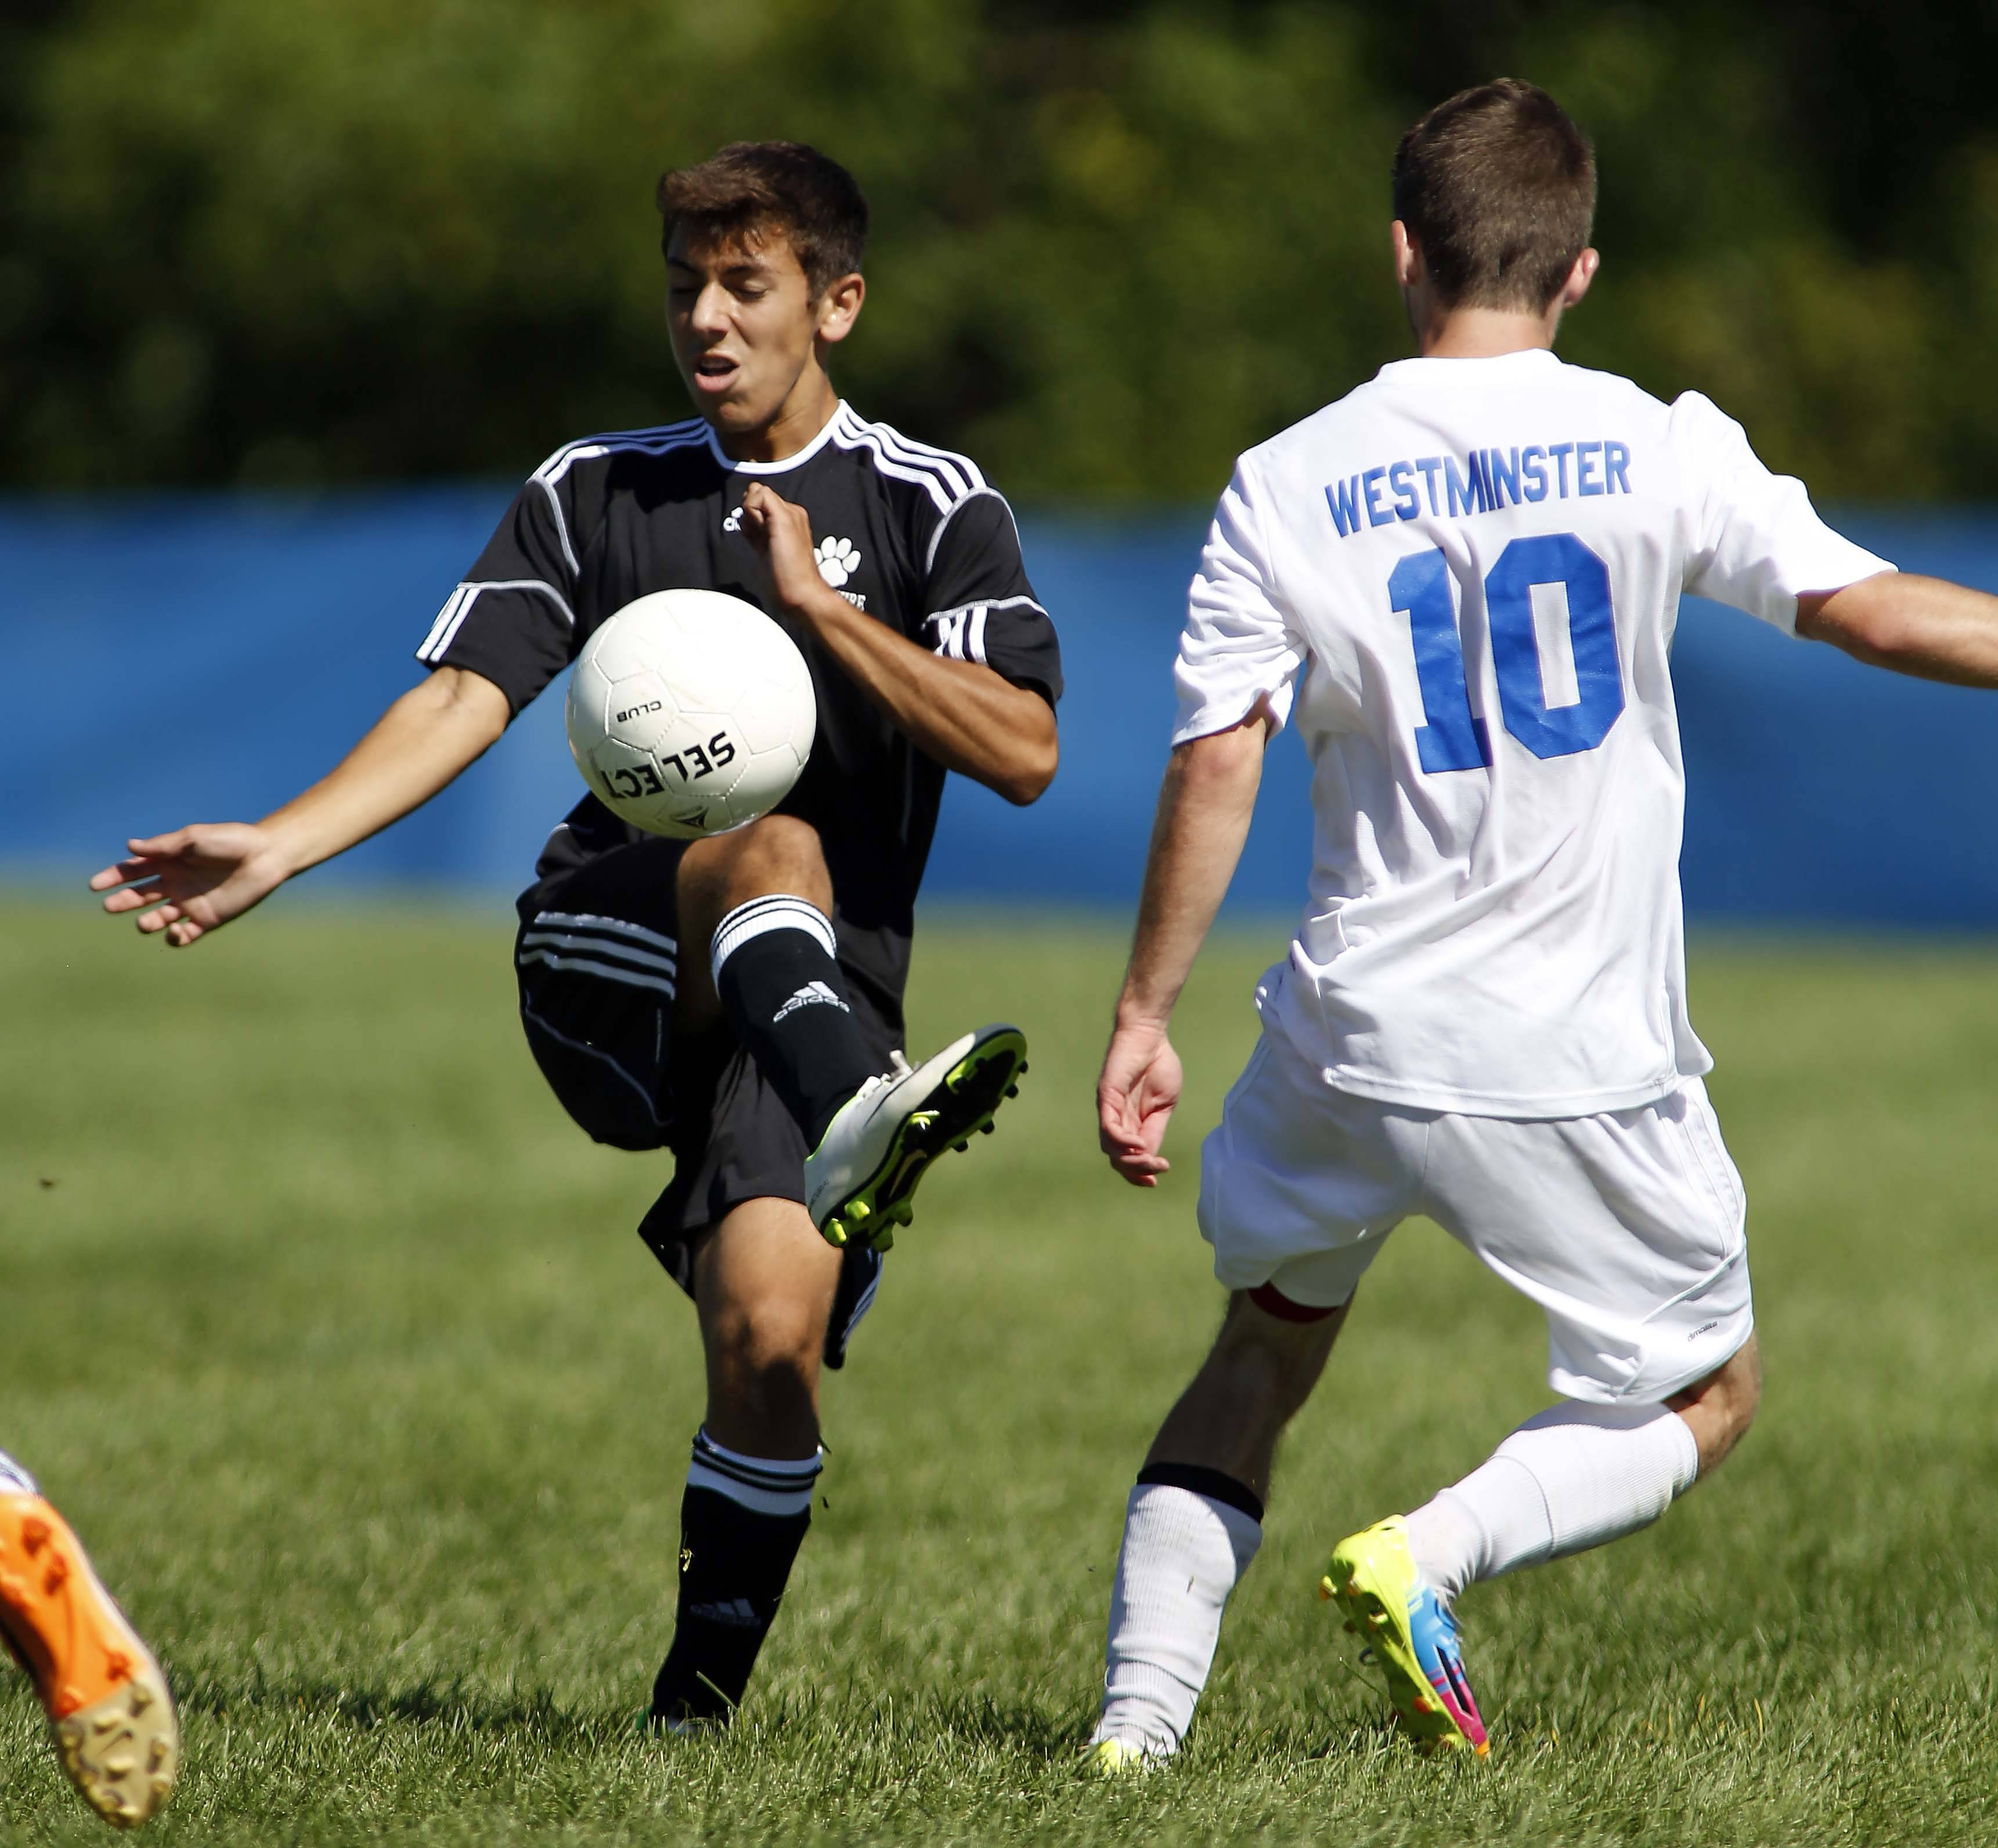 Hampshire's Charlie Piazza (2) battles Westminster Christian's Noah Gannon for control during soccer action at Westminster Christian in Elgin Saturday.